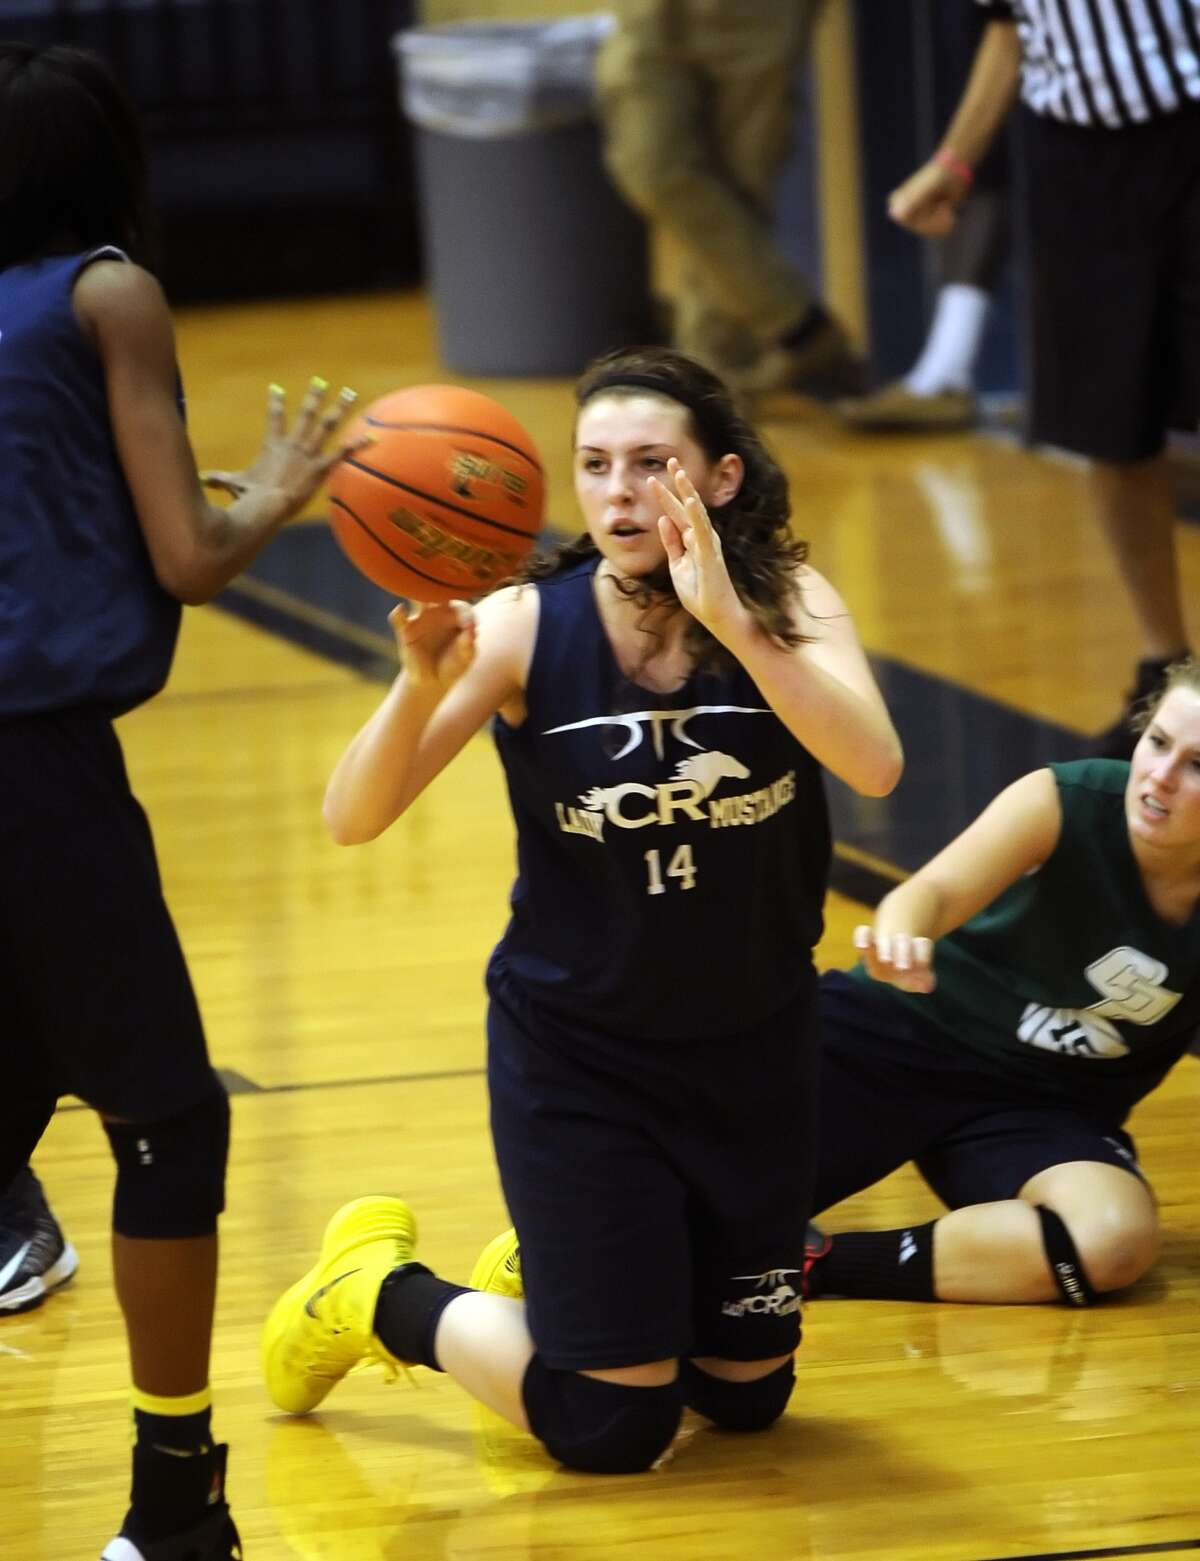 Cy Ranch and College Park girls basketball teams played a game at Cy Ranch High School as part of a three team scrimmage. Katie Roy (14) of Cy Ranch went to the floor to recover a loose ball against College Park.